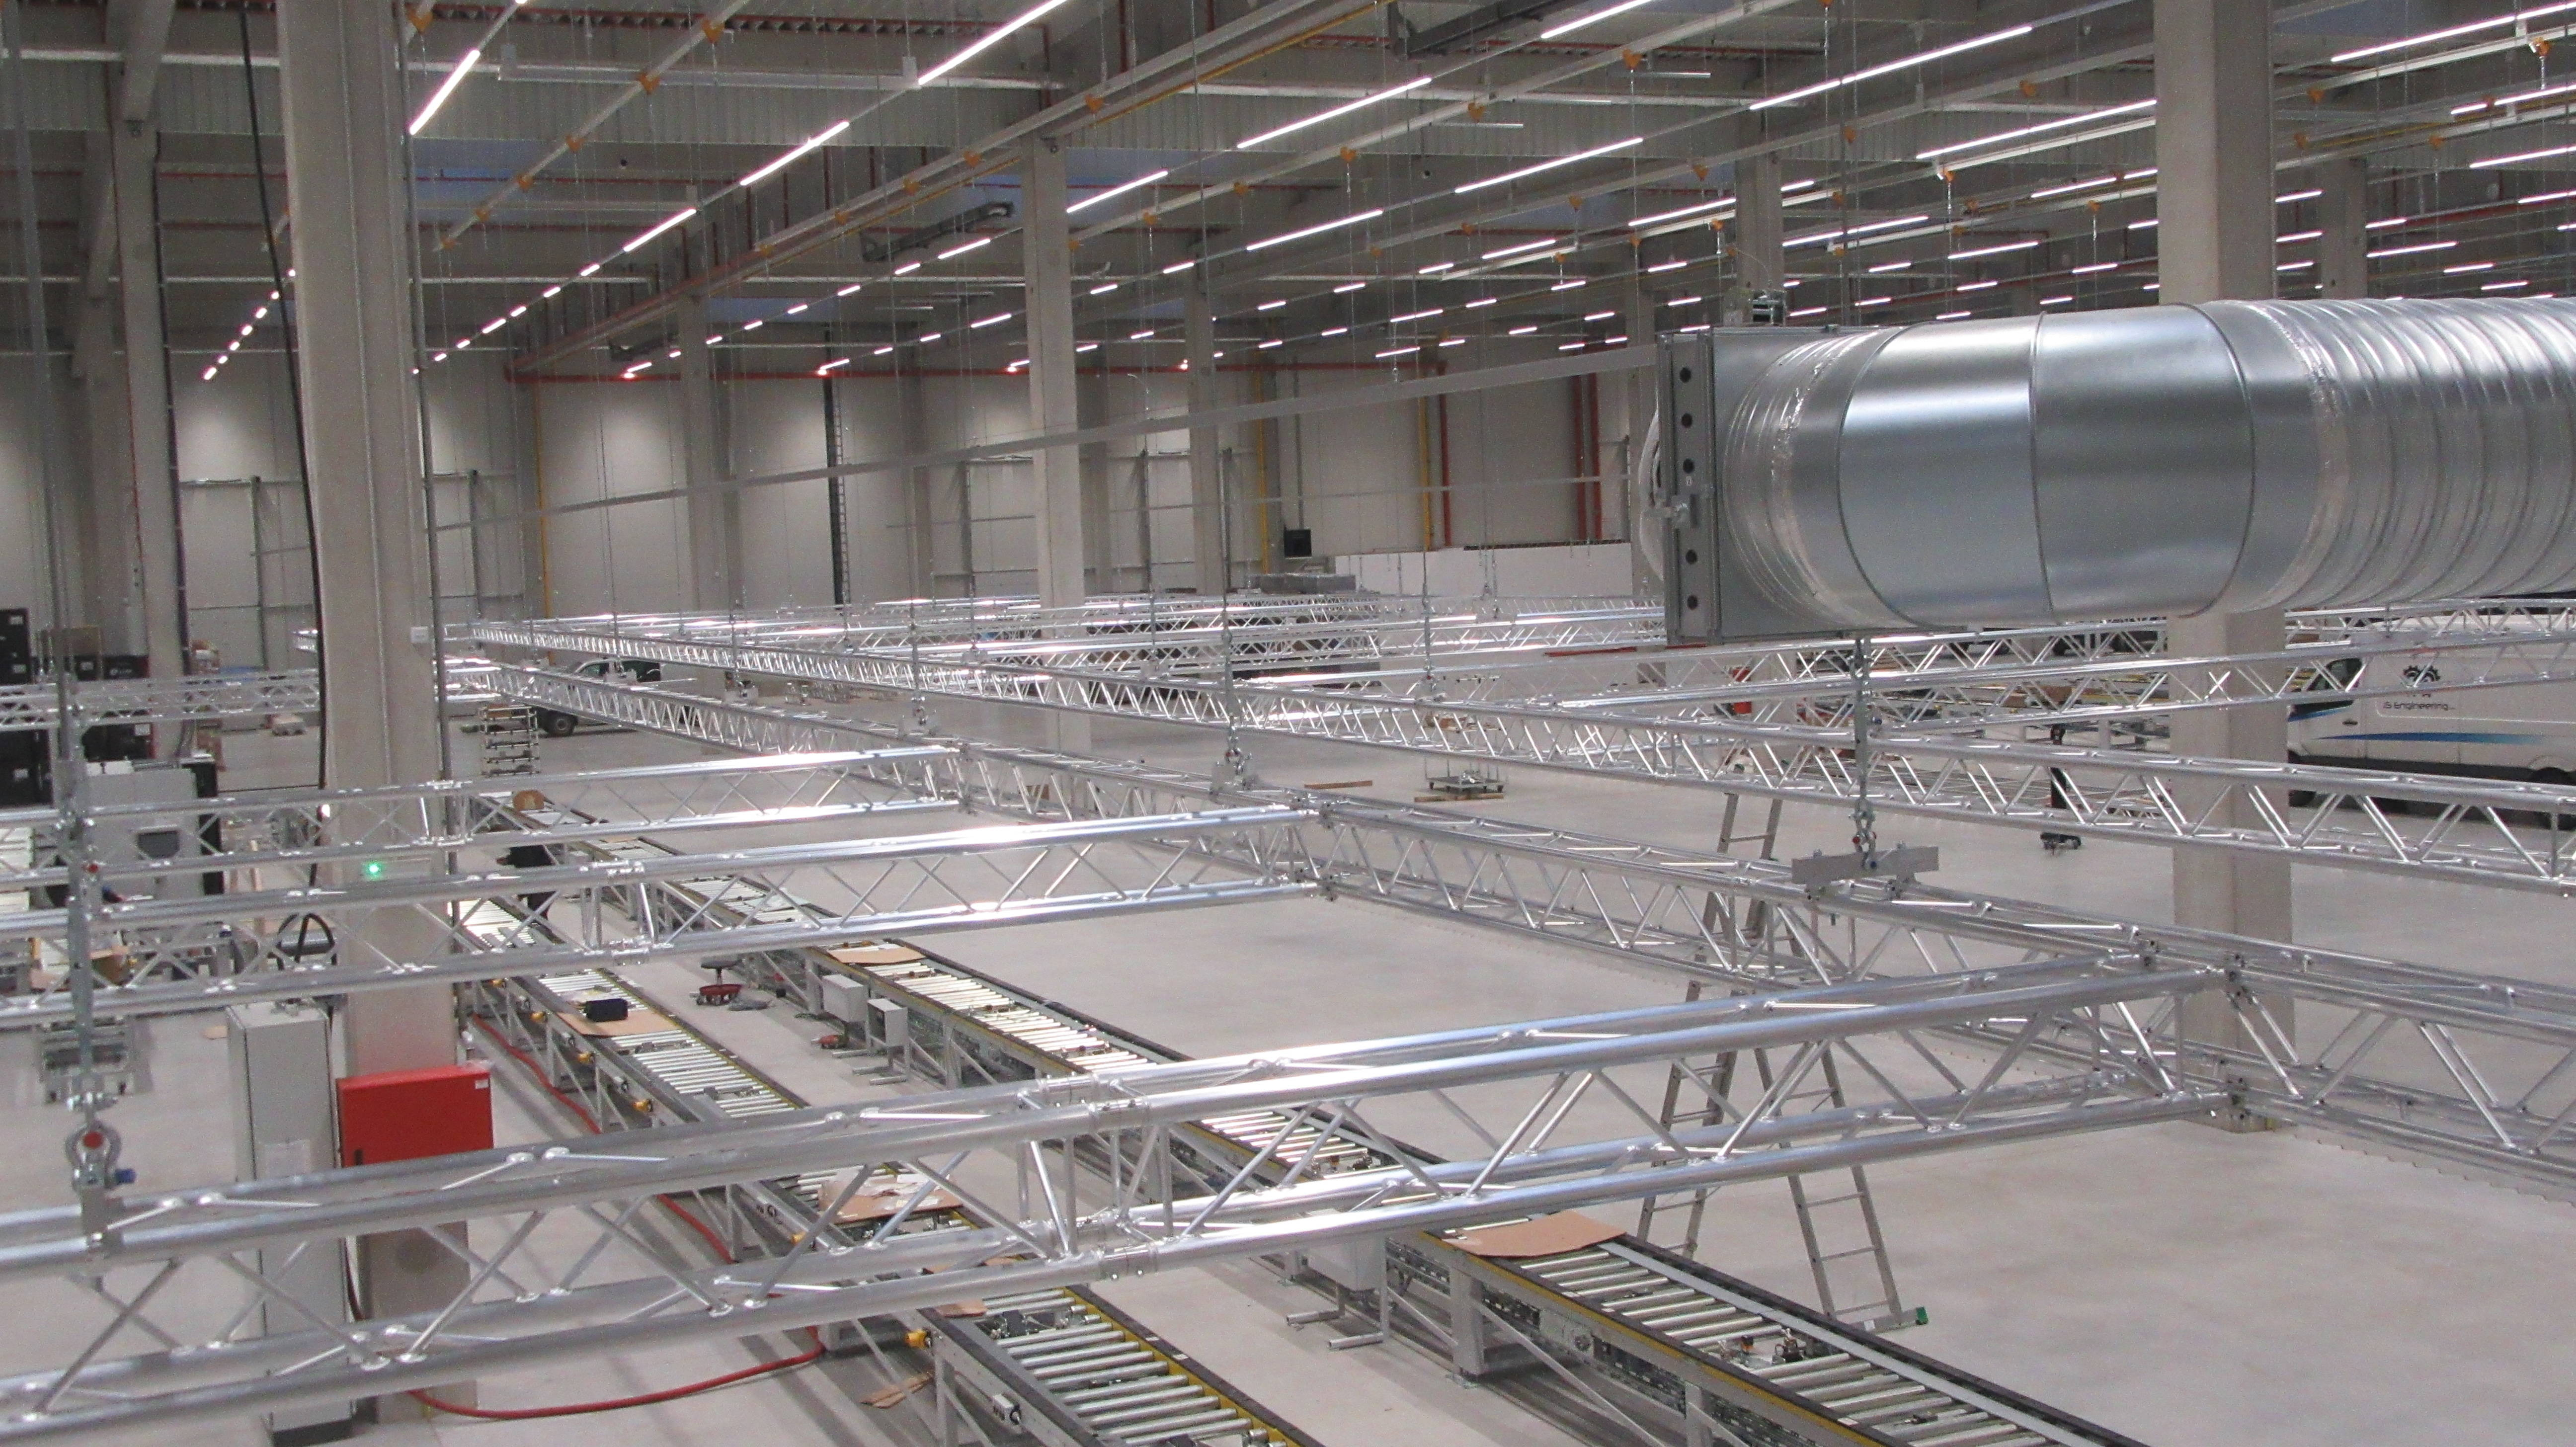 Lear puts their trust in MILOS truss